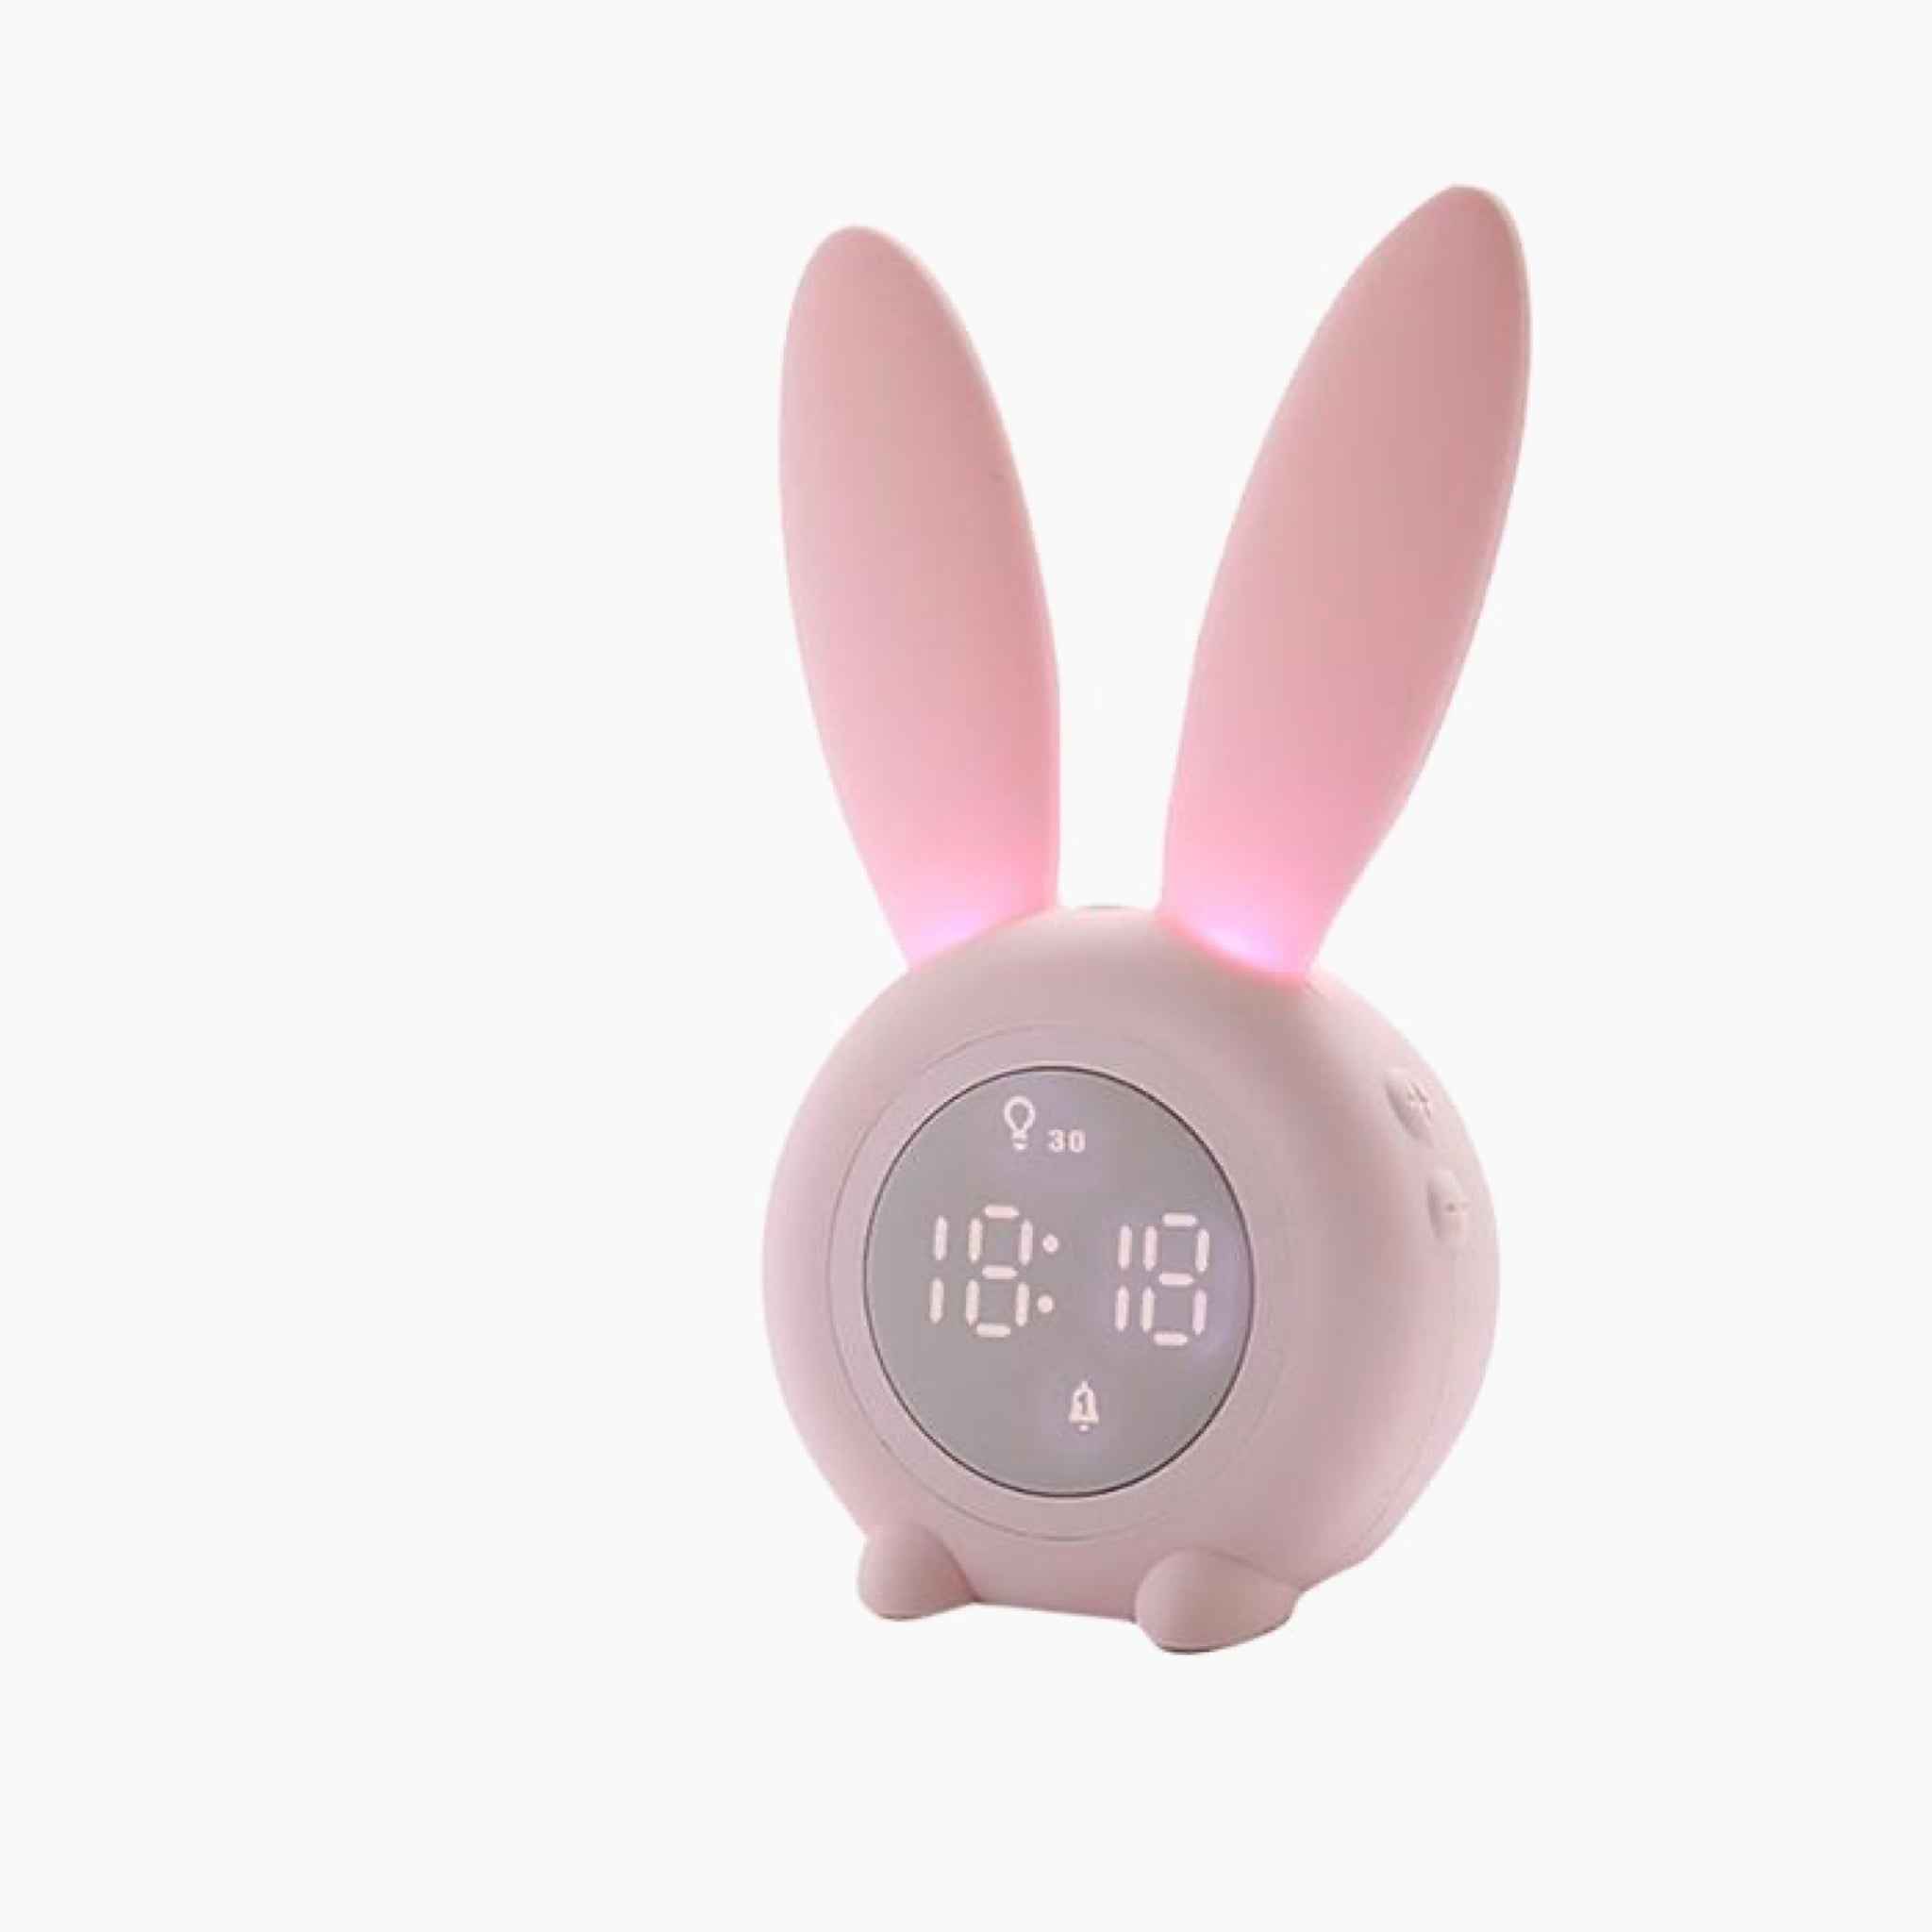 Cute Rabbit Pink Digital Alarm Clock Wake Up Light Table LED Lamp Snooze Clocks Sunrise Sunset Alarm Clock Table Decoration Bedroom Accessories Trend